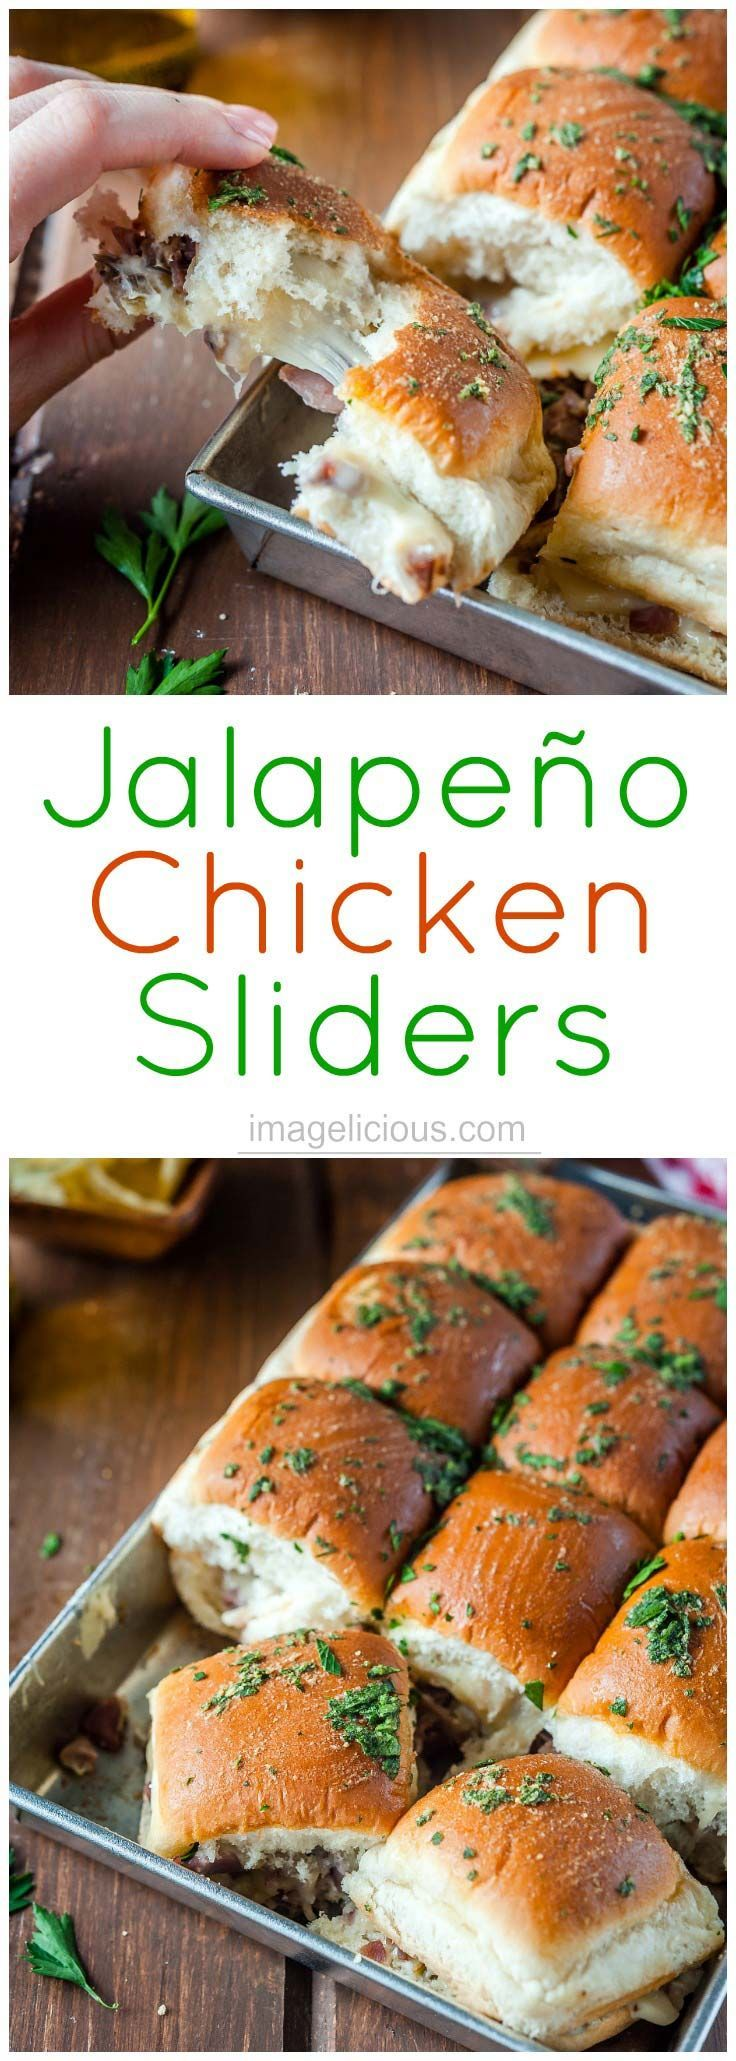 Jalapeno Chicken Sliders are an ultimate lunch, dinner, or party treat! Easy and quick to make with leftover chicken. Cheesy, salty, spicy, delicious | Imagelicious (Easy Meal To Make With Chicken)